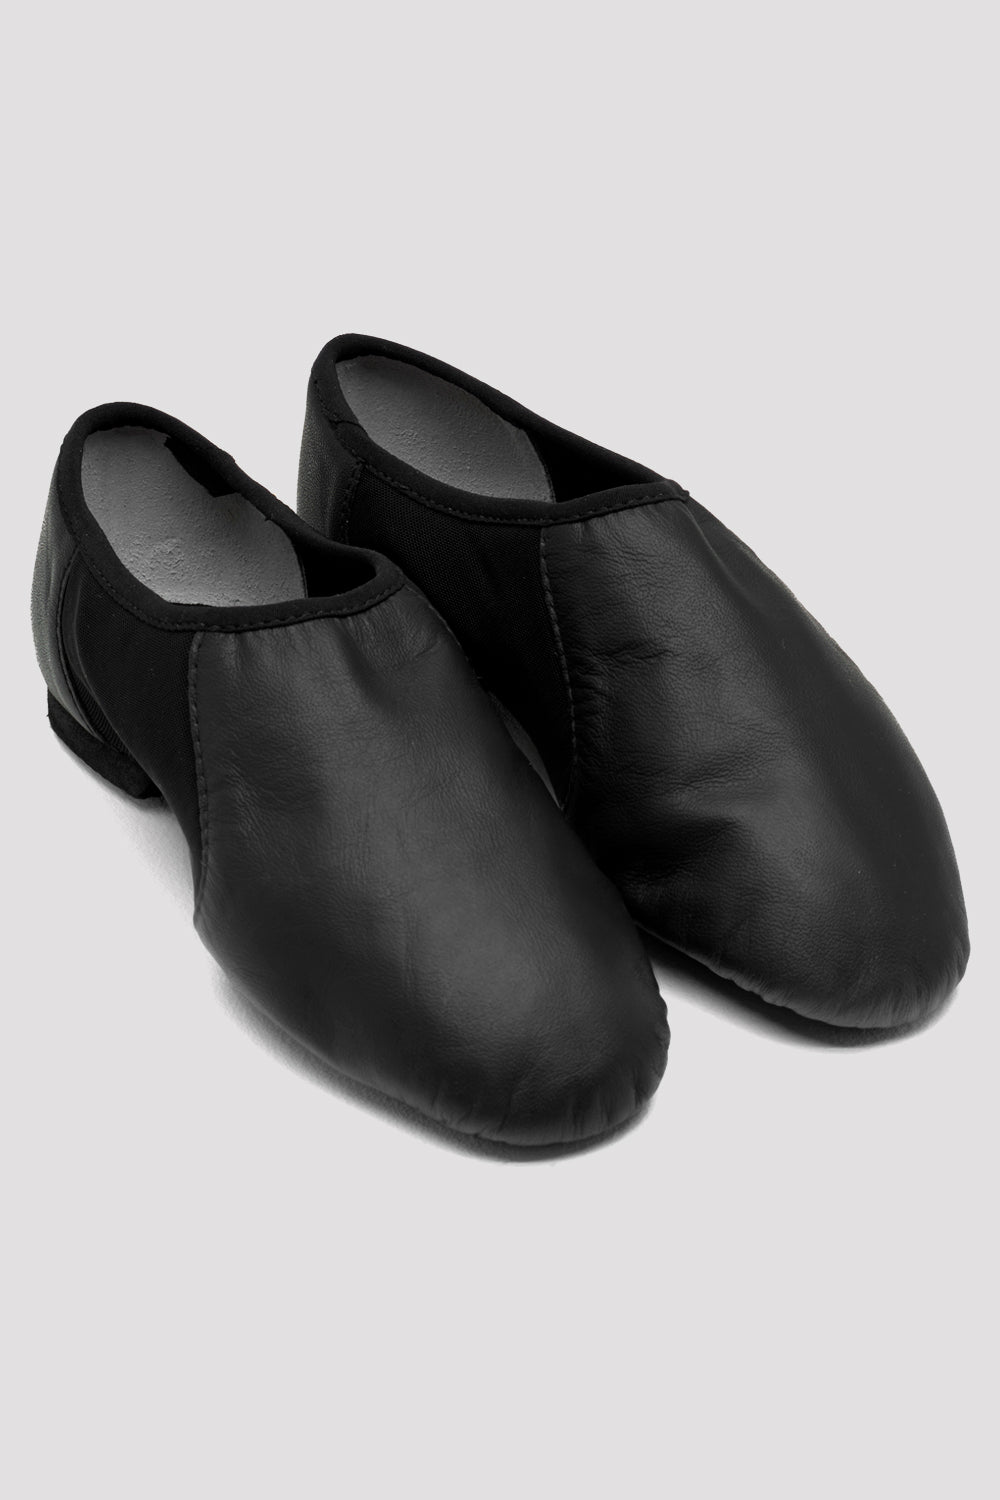 Ladies Neo-Flex Slip On Leather Jazz Shoes